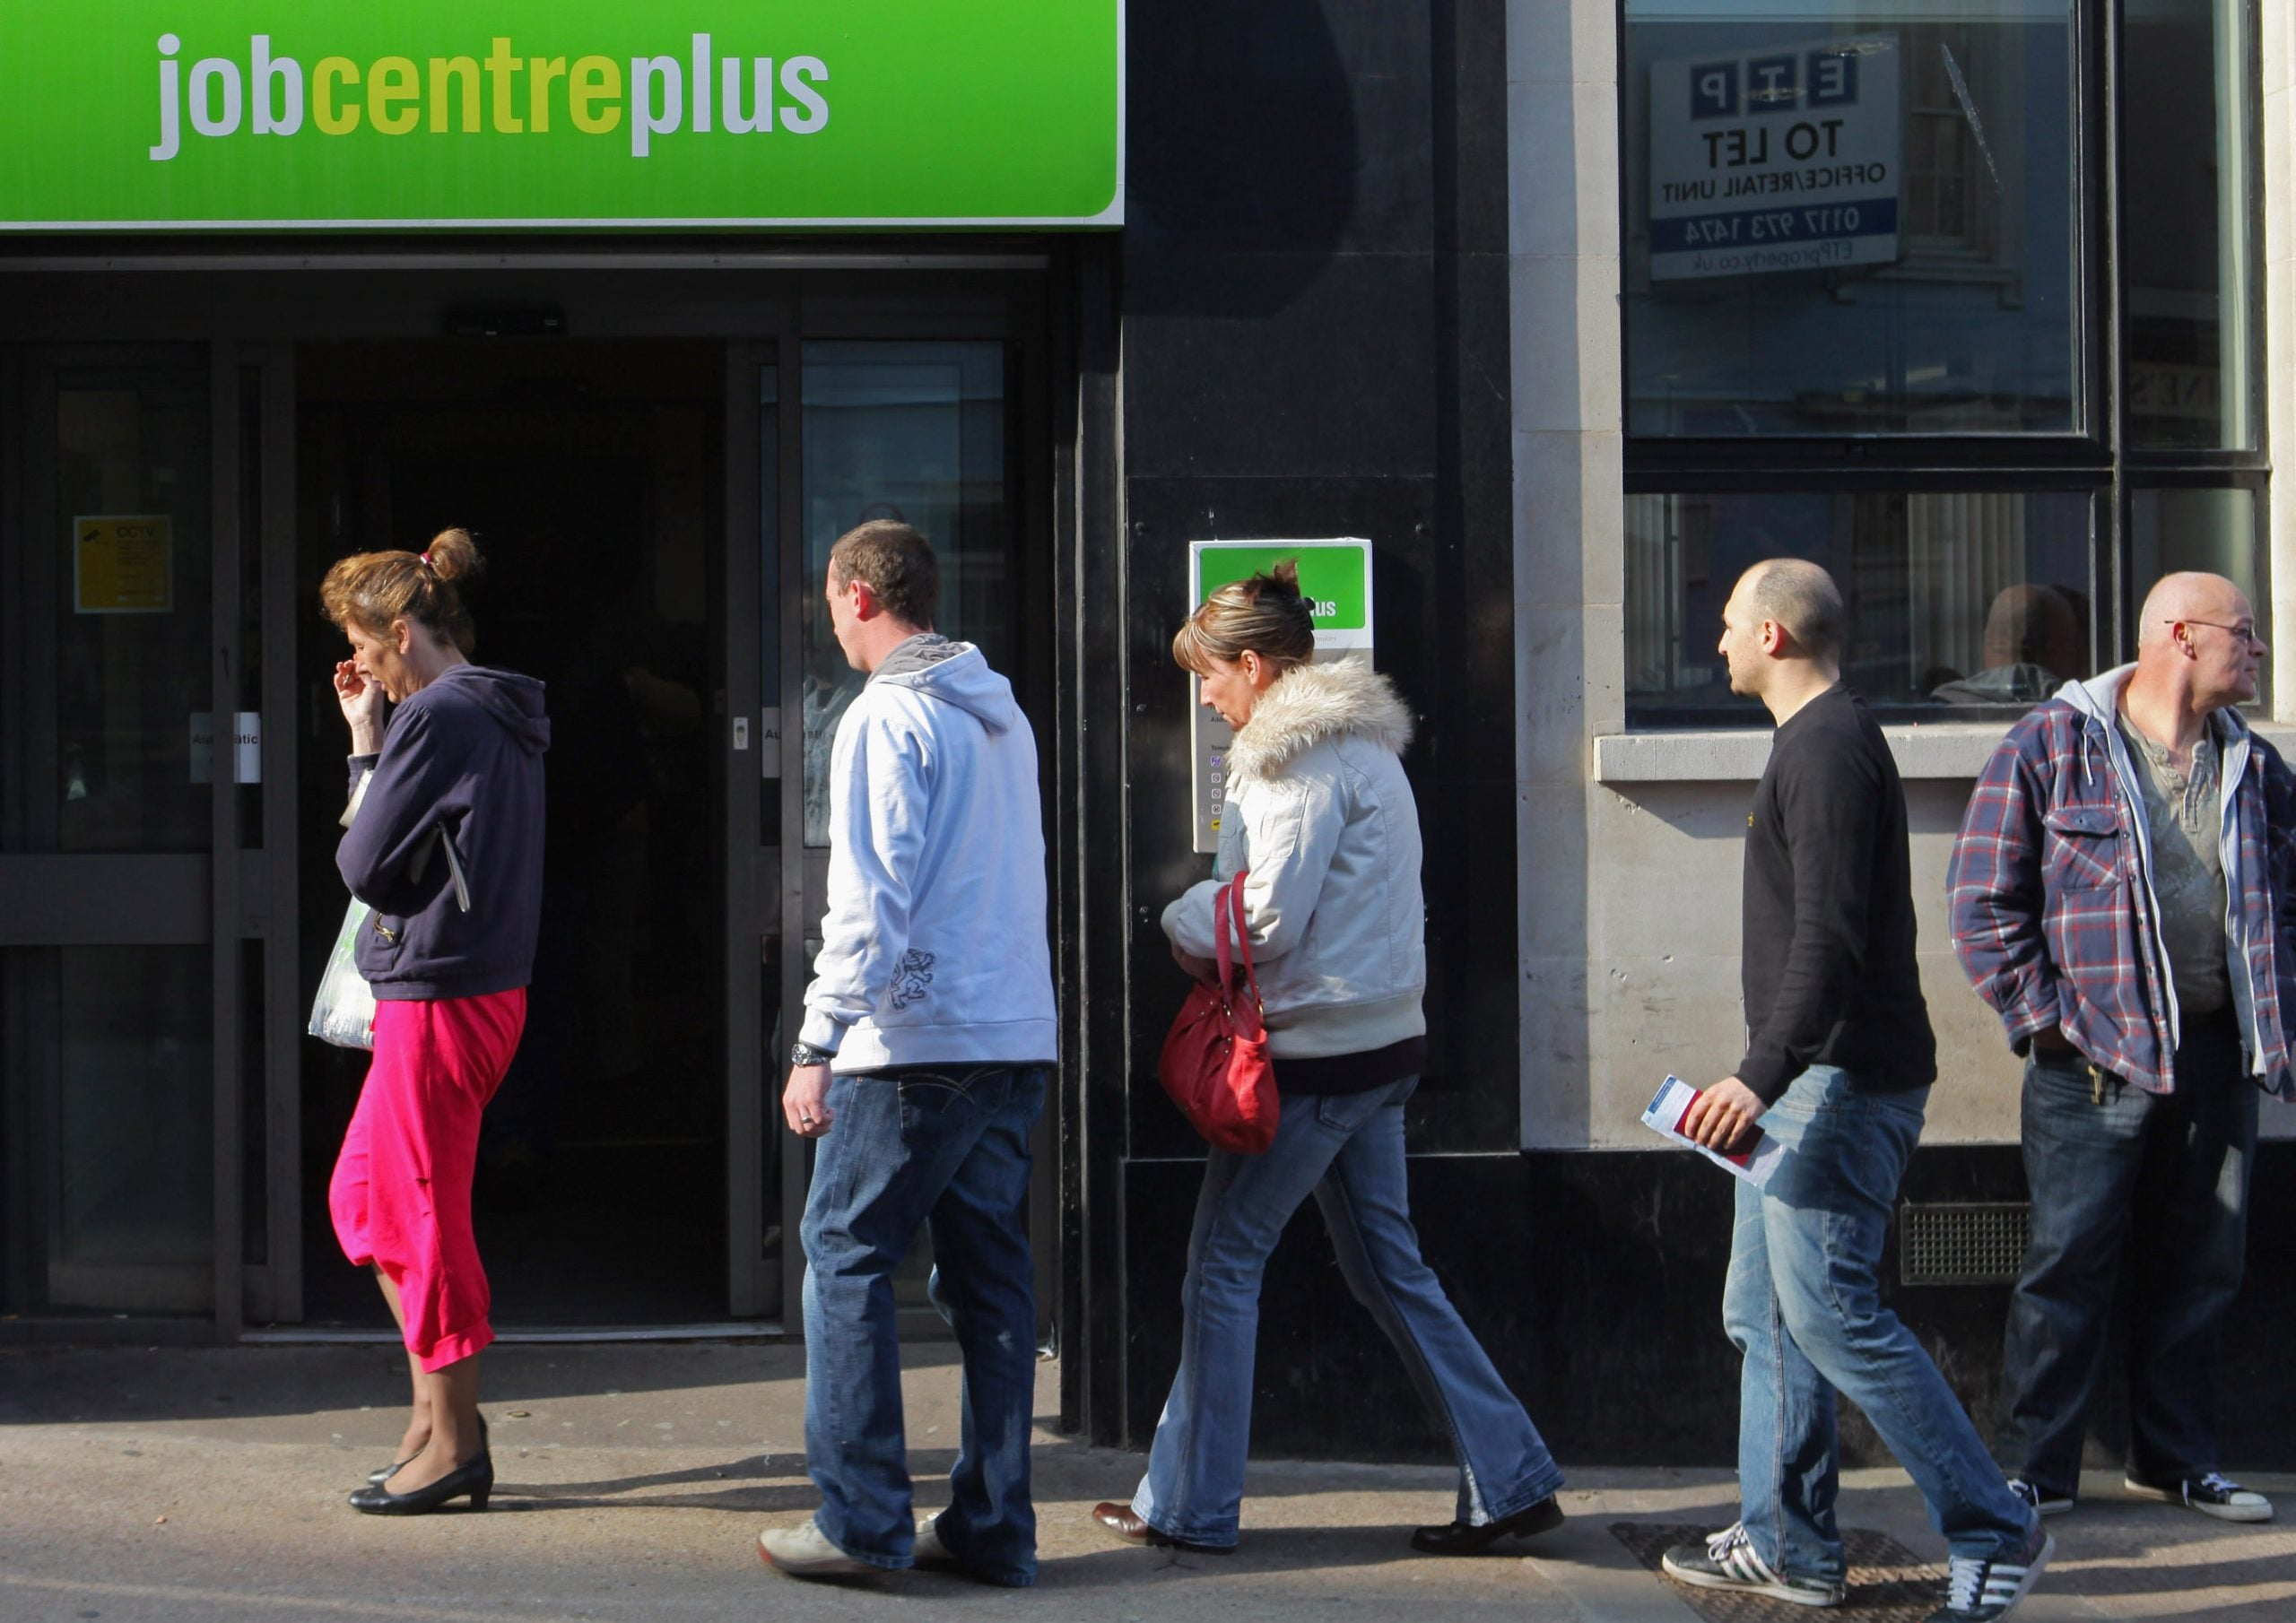 The employment figures that Conservatives should be worried about